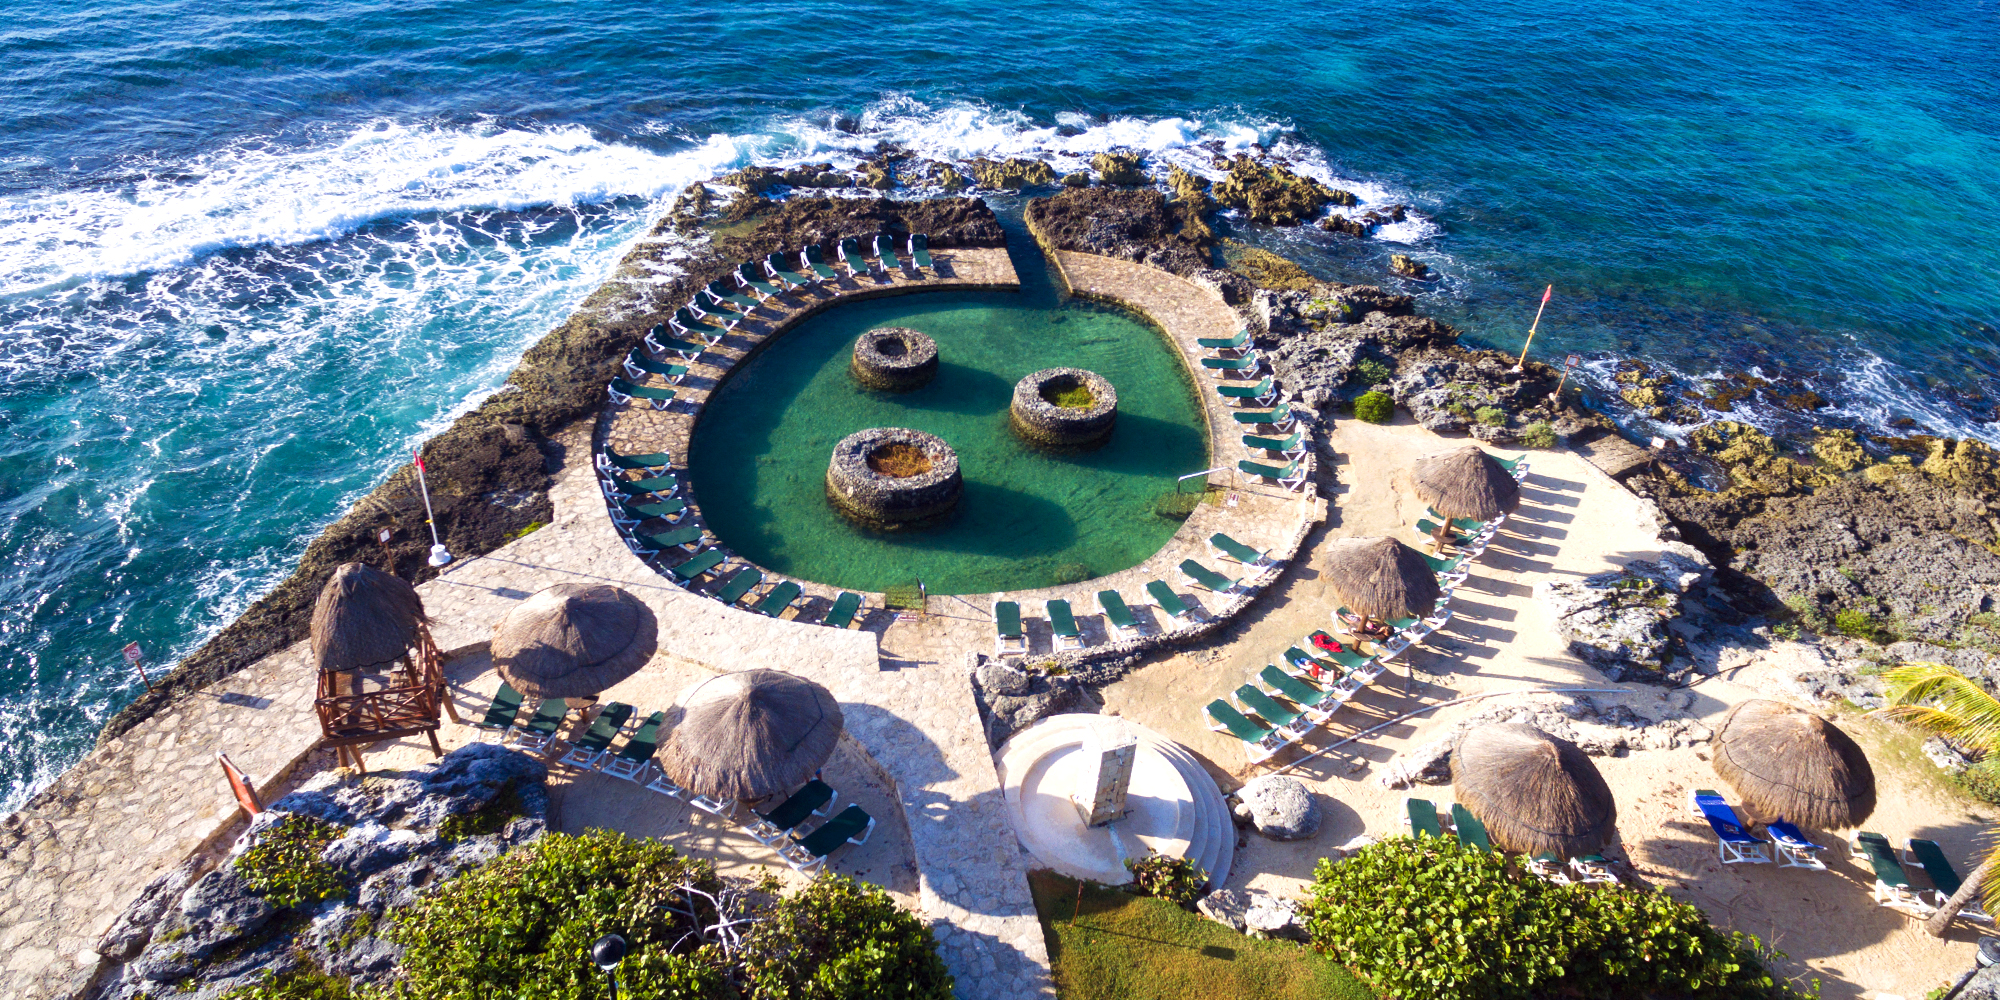 8 best all inclusive resorts in mexico 2018 top mexico for Best all inclusive resort destinations